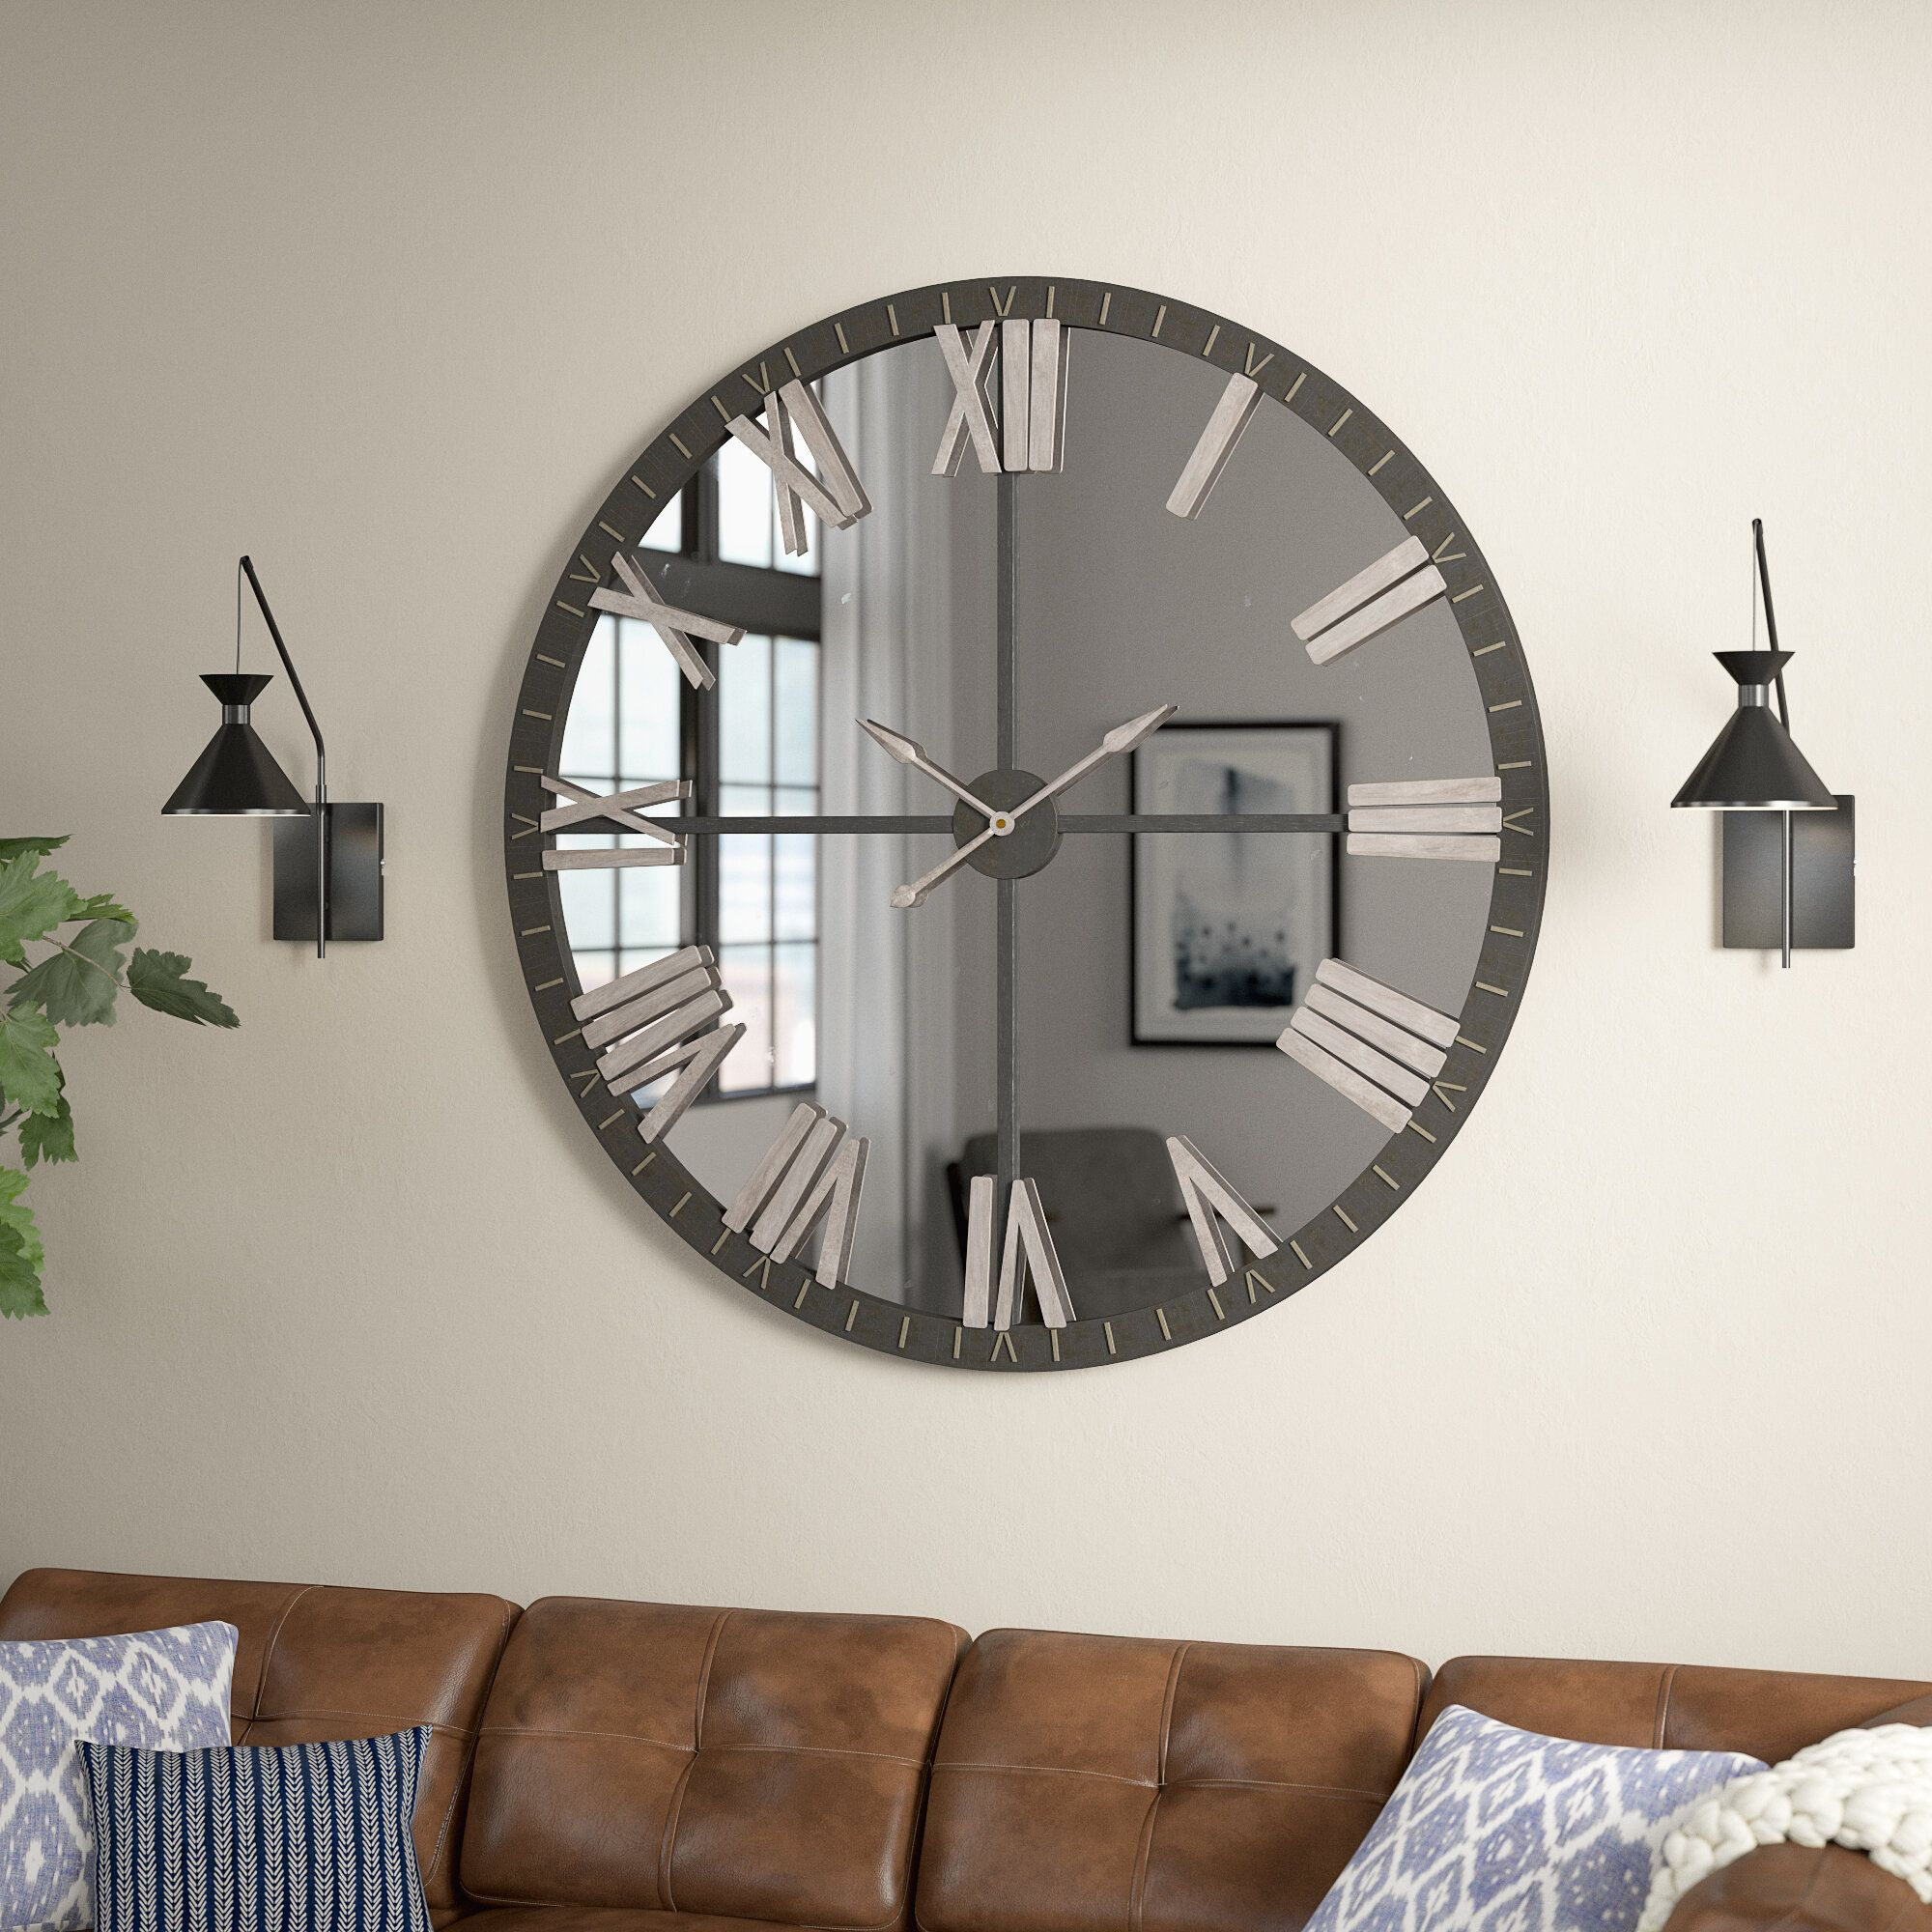 Oversized Wall Clock With Floating Shelves Wall Clocks Living Room Wall Decor Living Room Living Room Wall